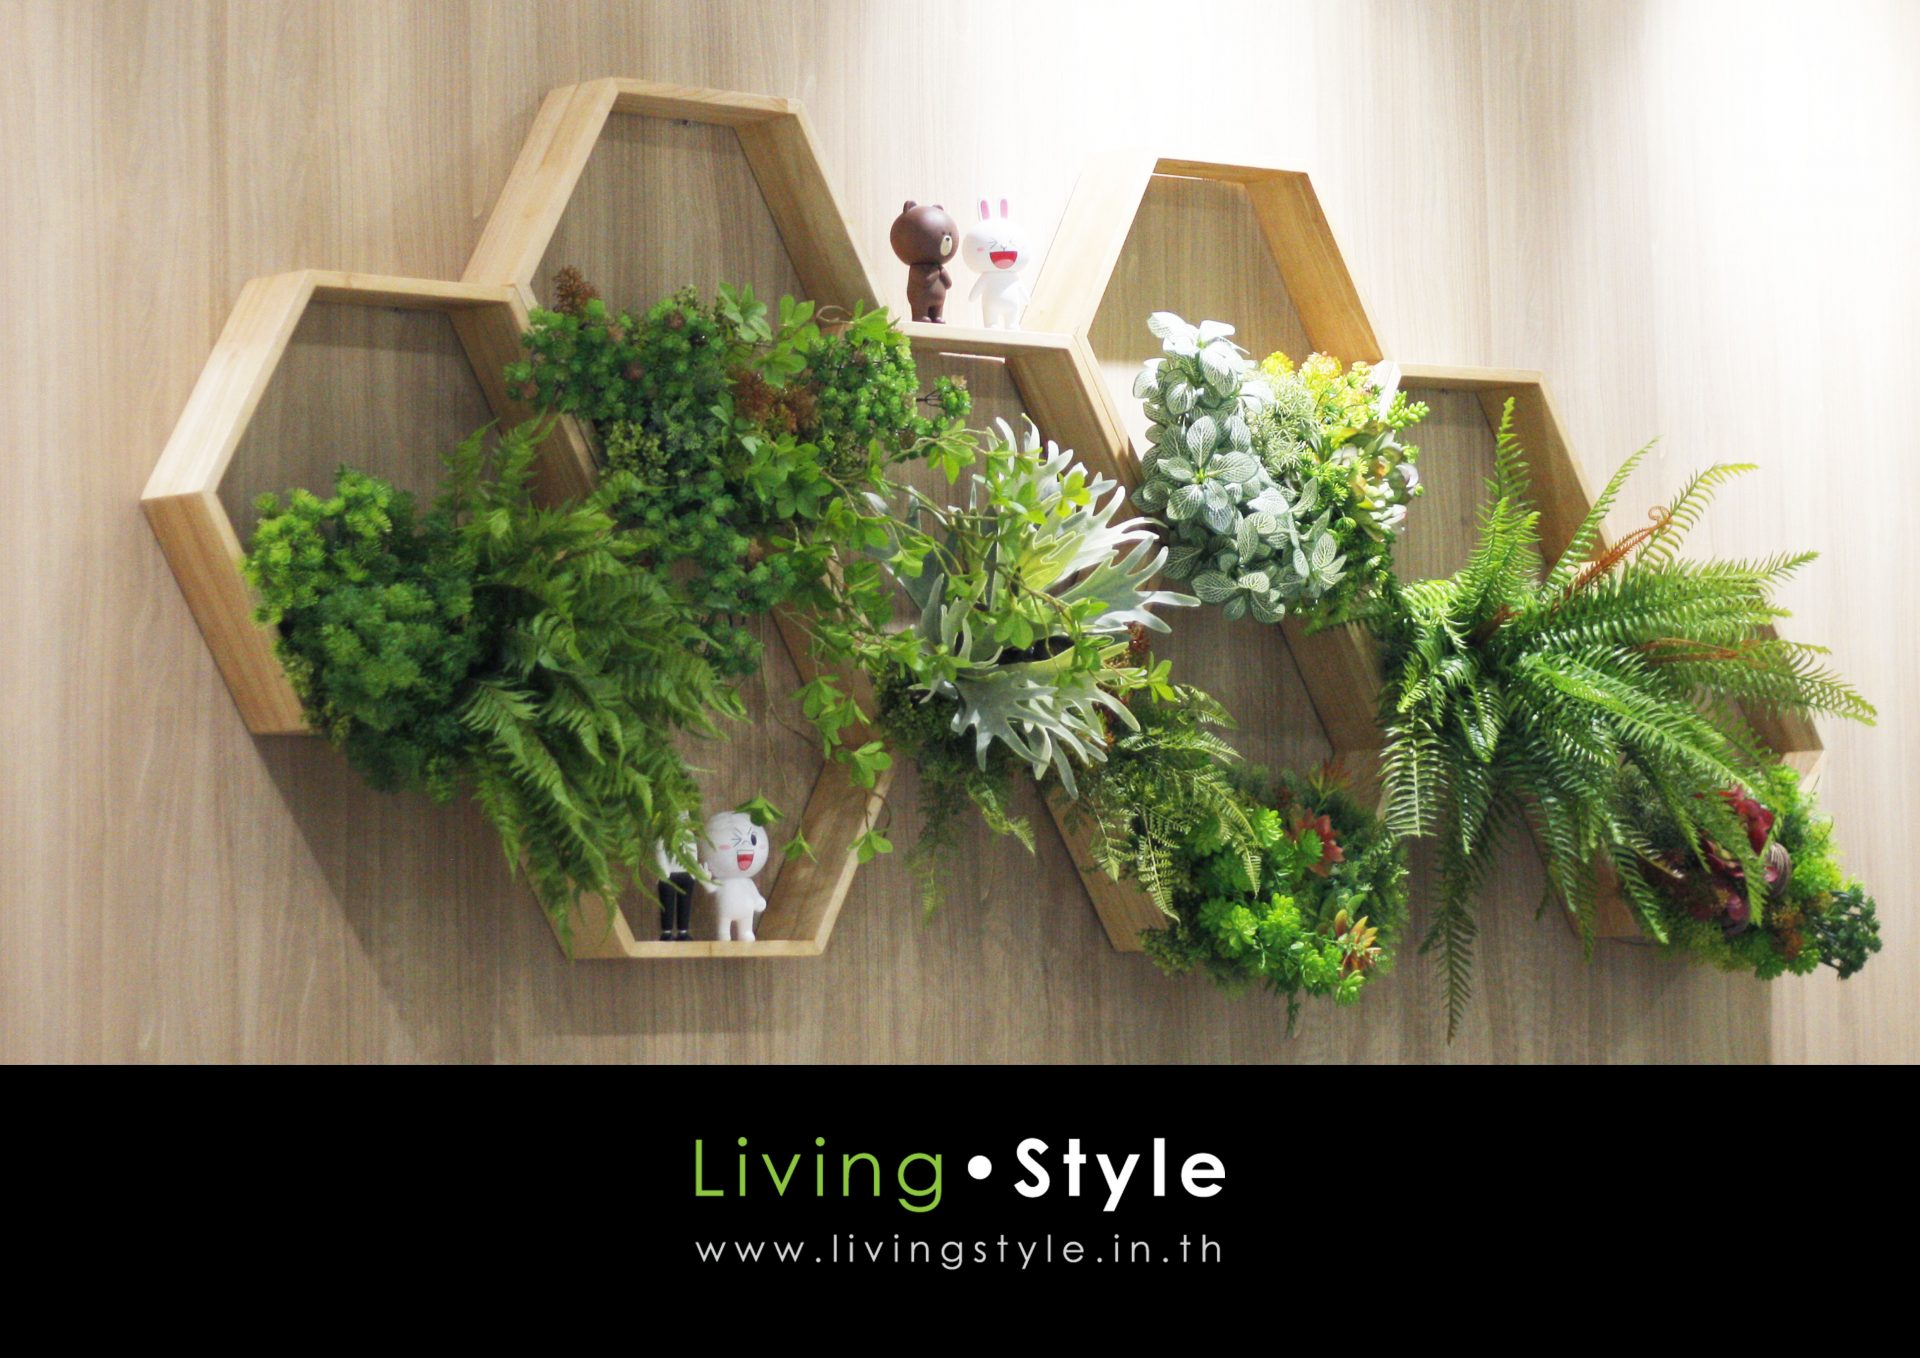 Livingstyle 026 catalog